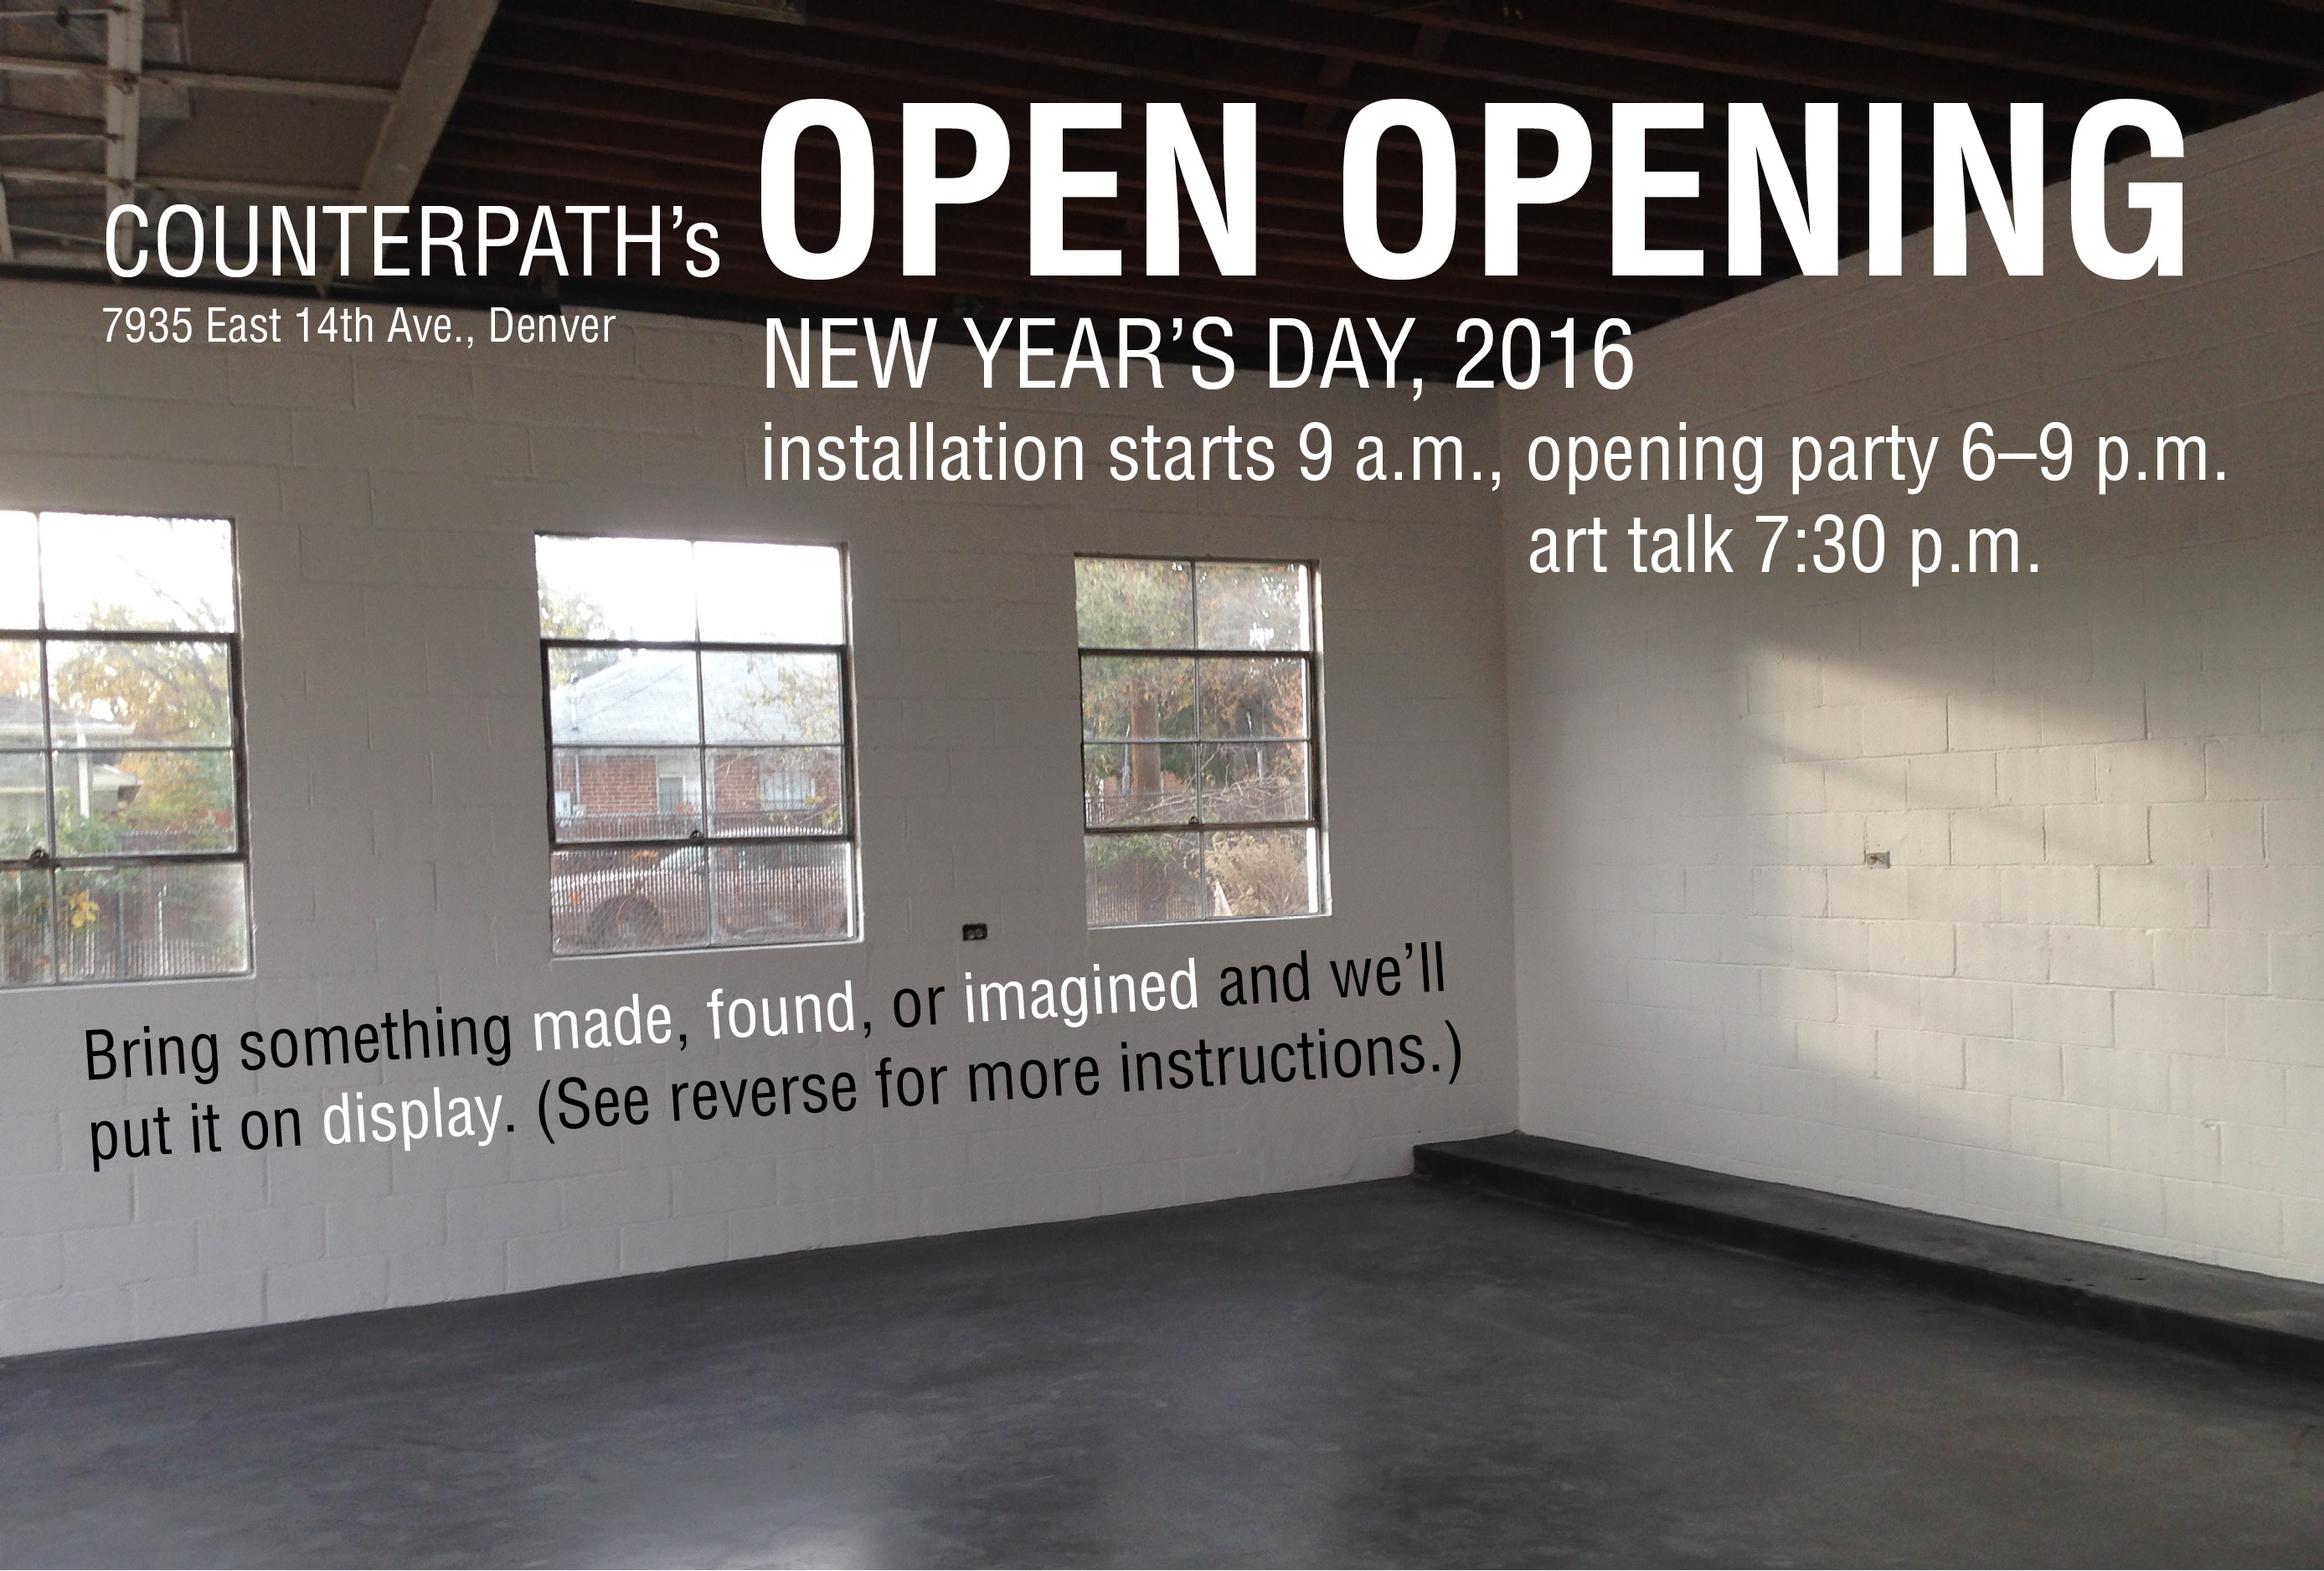 Open Opening, New Year's Day, Friday, January 1, 2016